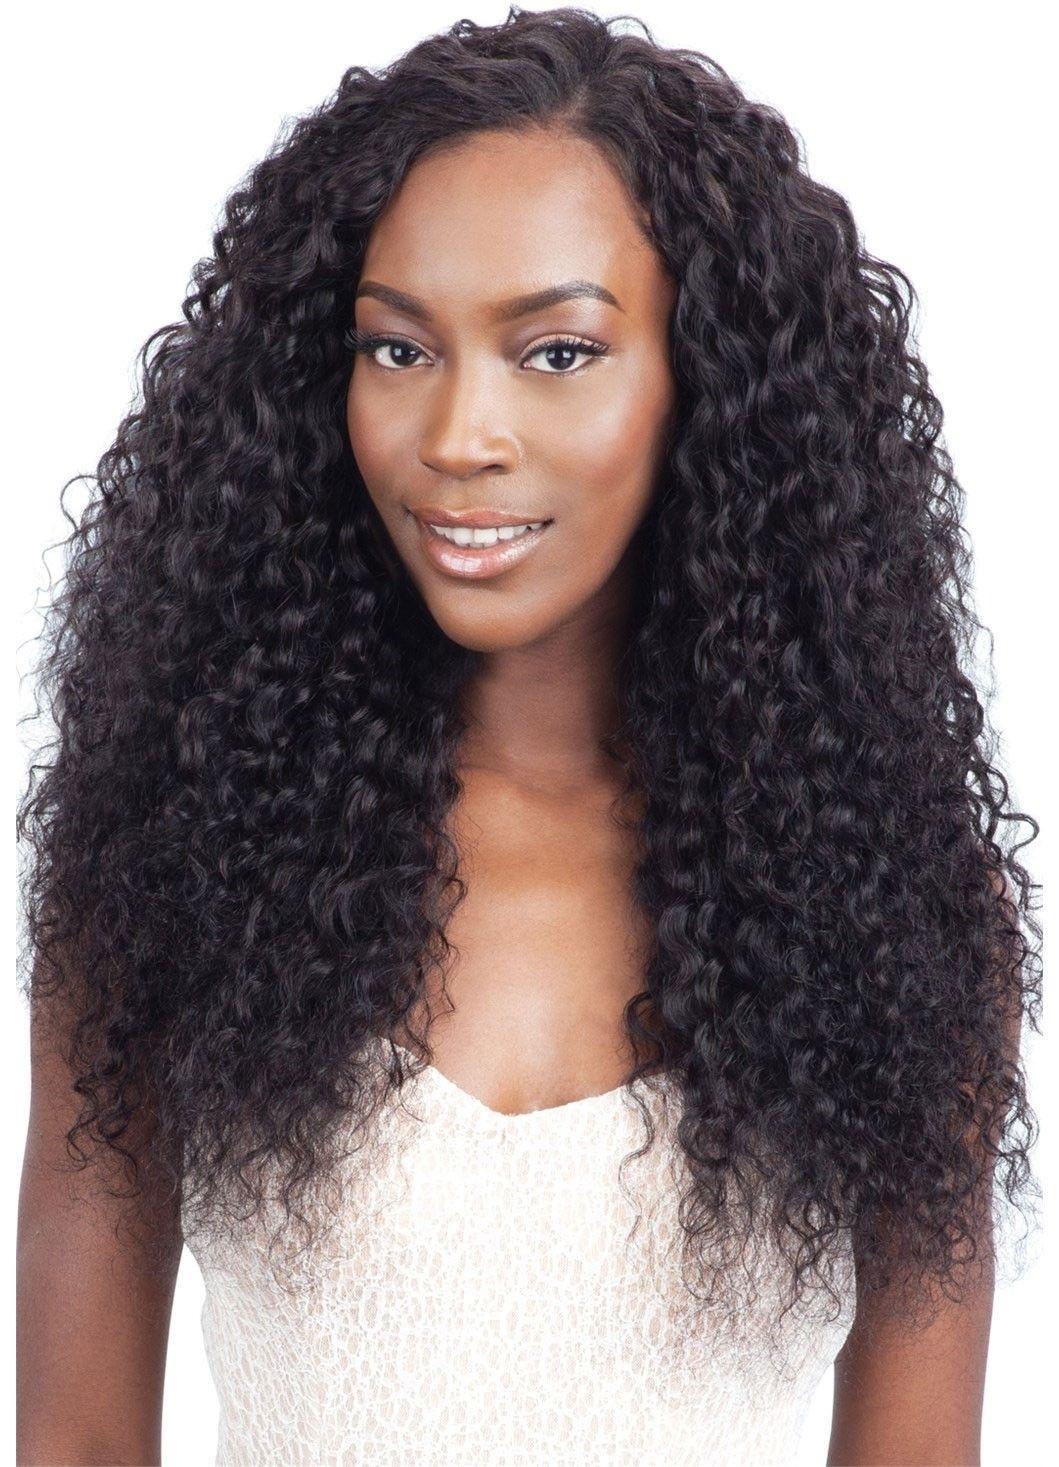 A Wig Is A Fast And Easy Way To Change Your Look And Divatress Offers The Largest Selection Of Wigs For Women Onlinefocusing On Wigs For Black Women Whether You